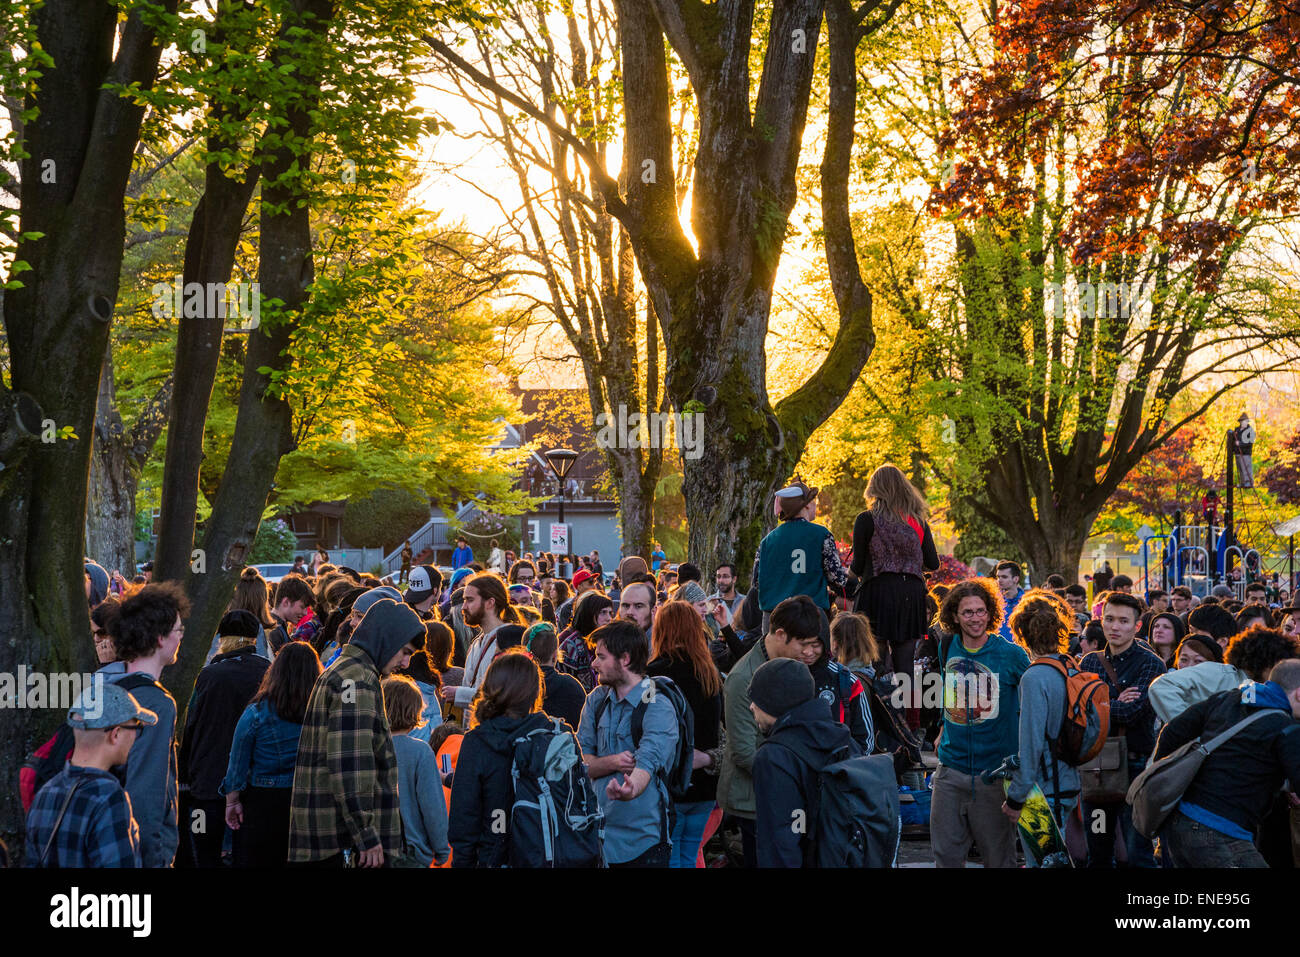 May Day gathering, Grandview Park, Commercial Drive, Vancouver, British Columbia, Canada. - Stock Image